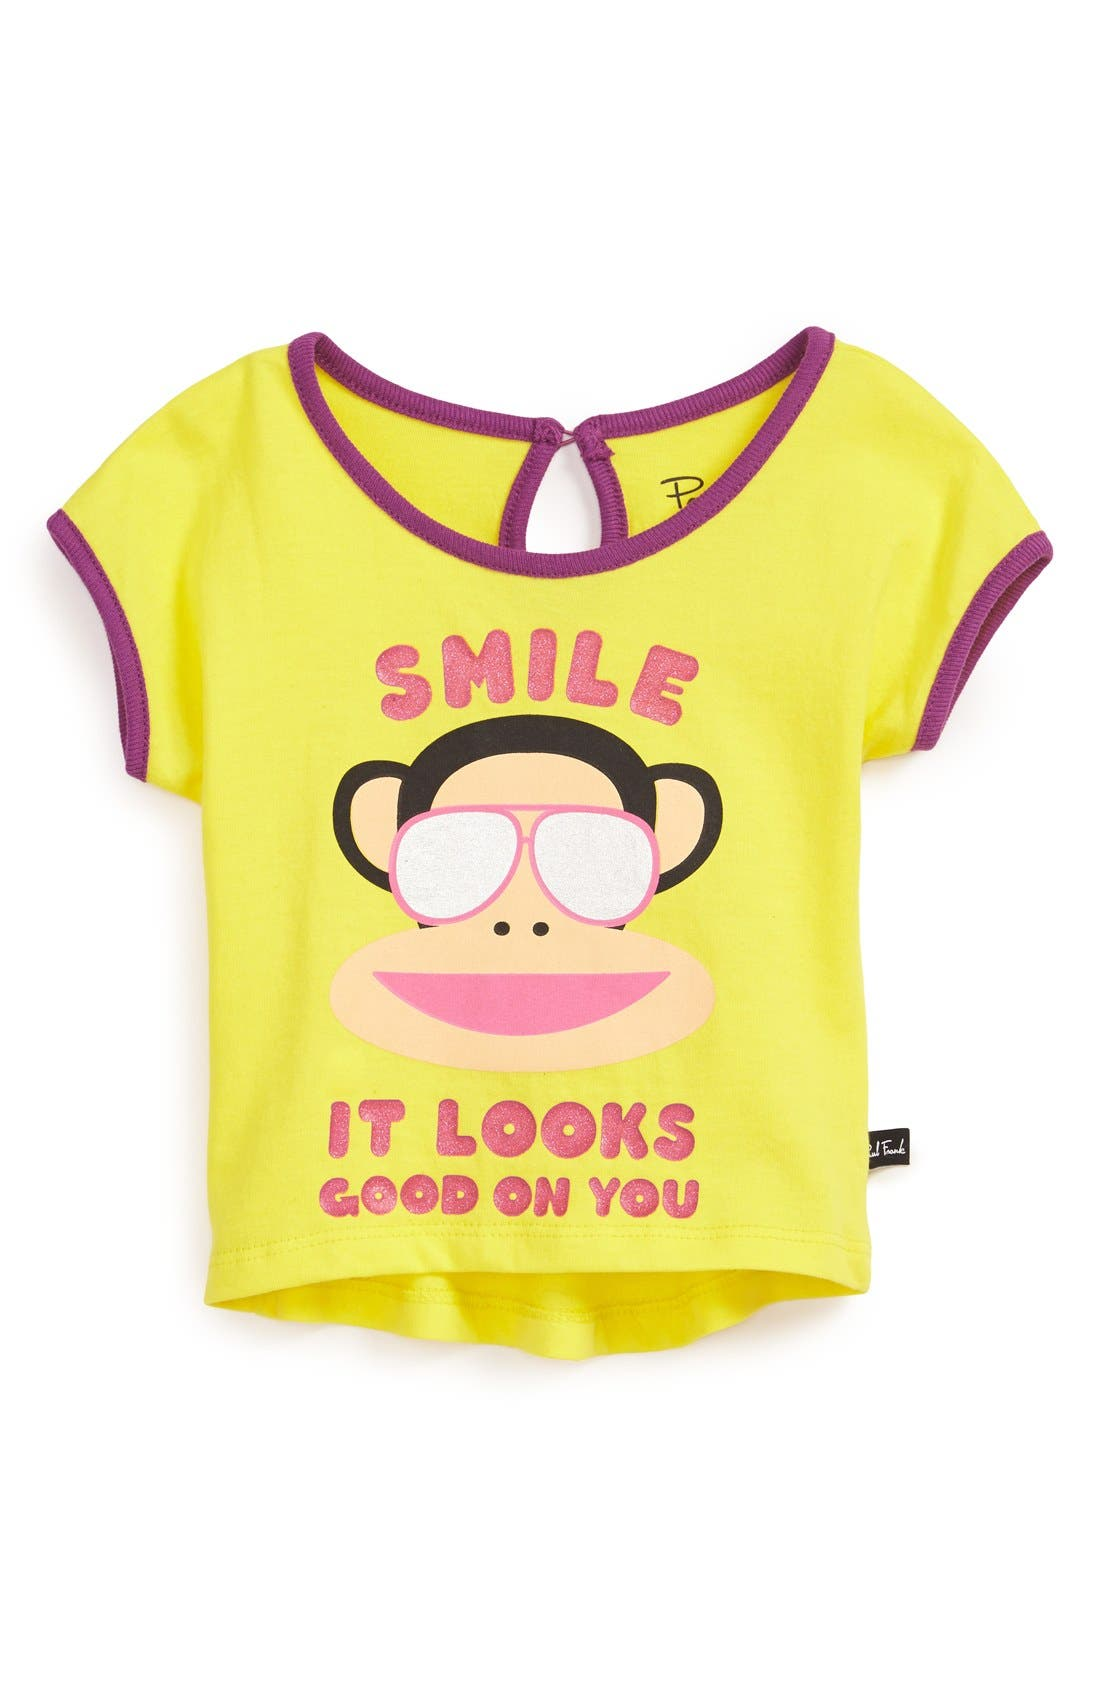 Alternate Image 1 Selected - Paul Frank 'Looks Good On You' High/Low Tee (Baby Girls)